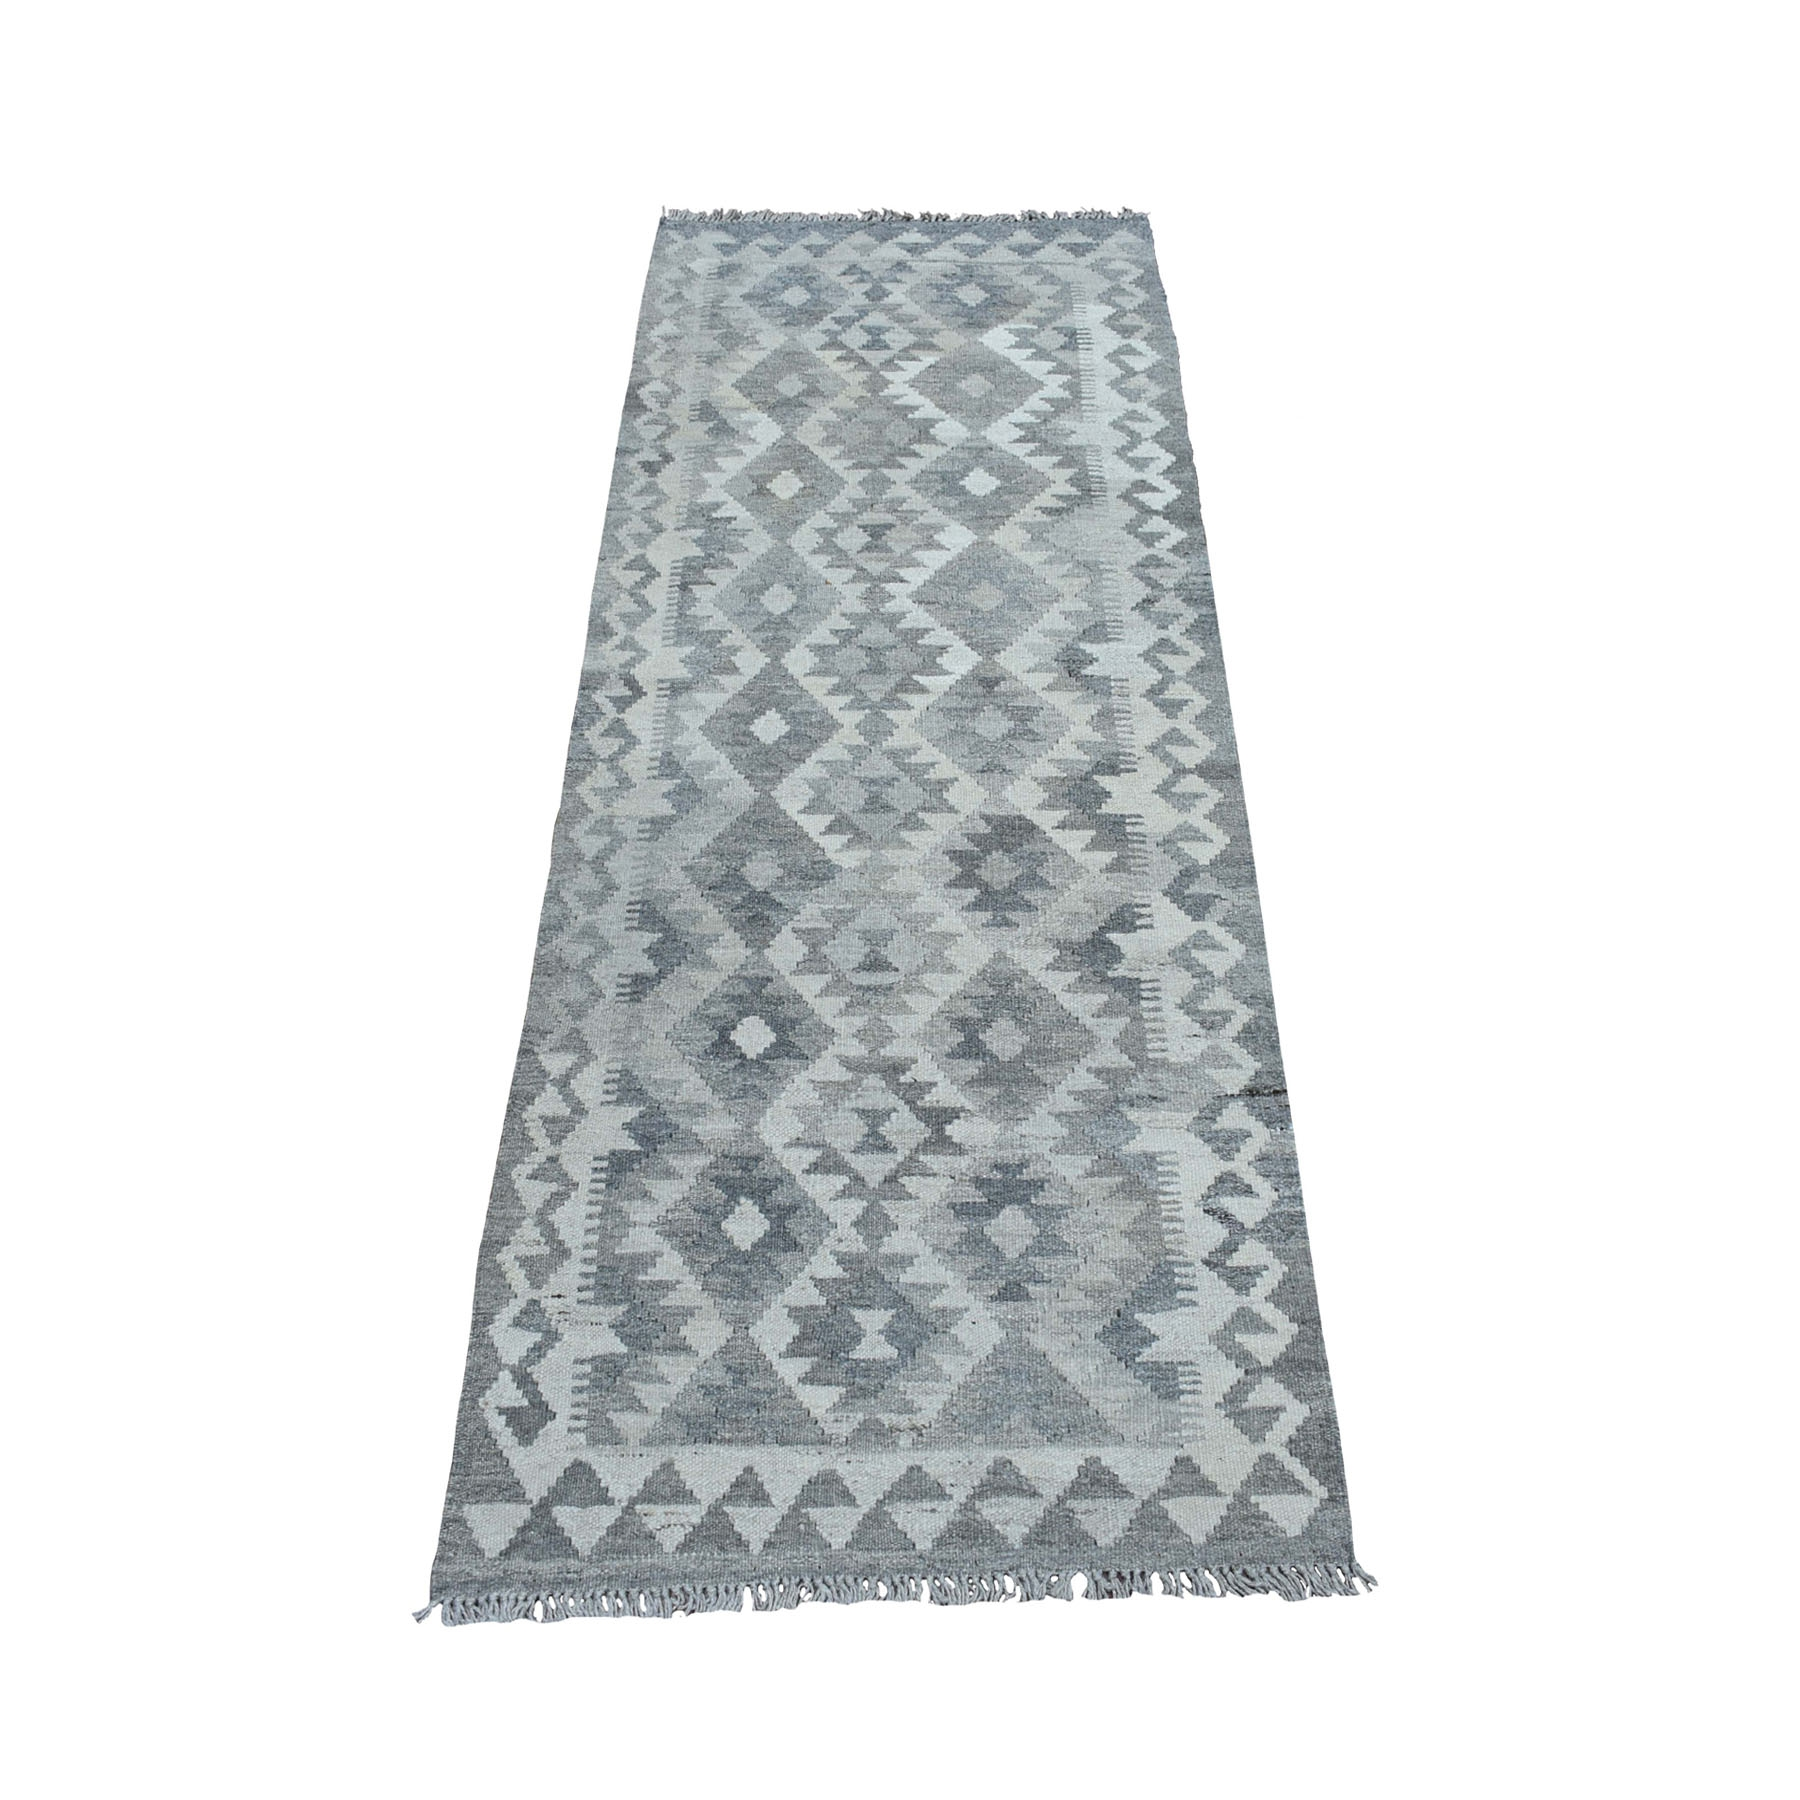 """2'5""""X6'4"""" Undyed Natural Wool Afghan Kilim Reversible Hand Woven Runner Oriental Rug moaec08a"""